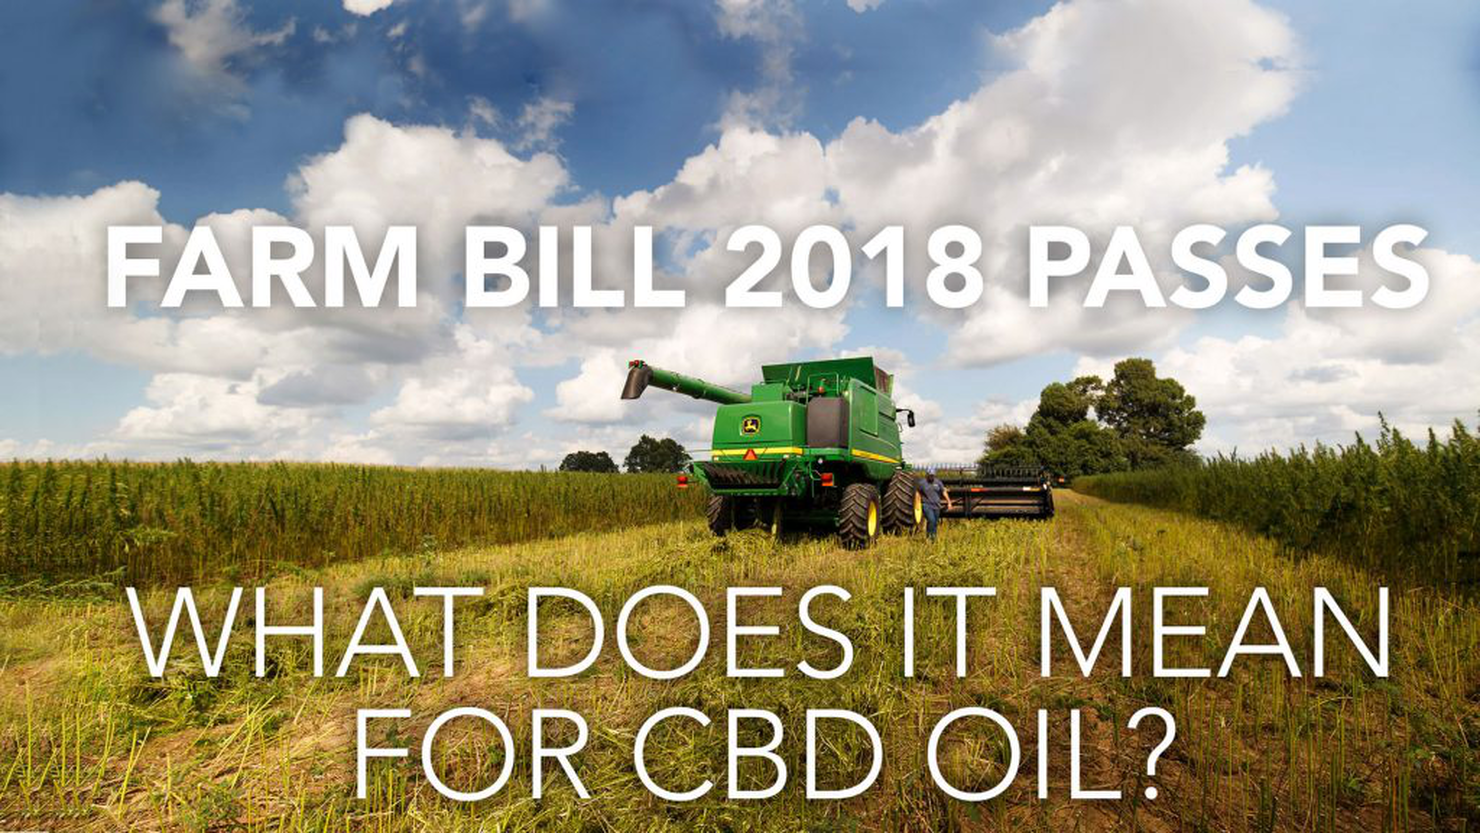 Farm Bill 2018 Passes – What Does It Mean for CBD Oil?